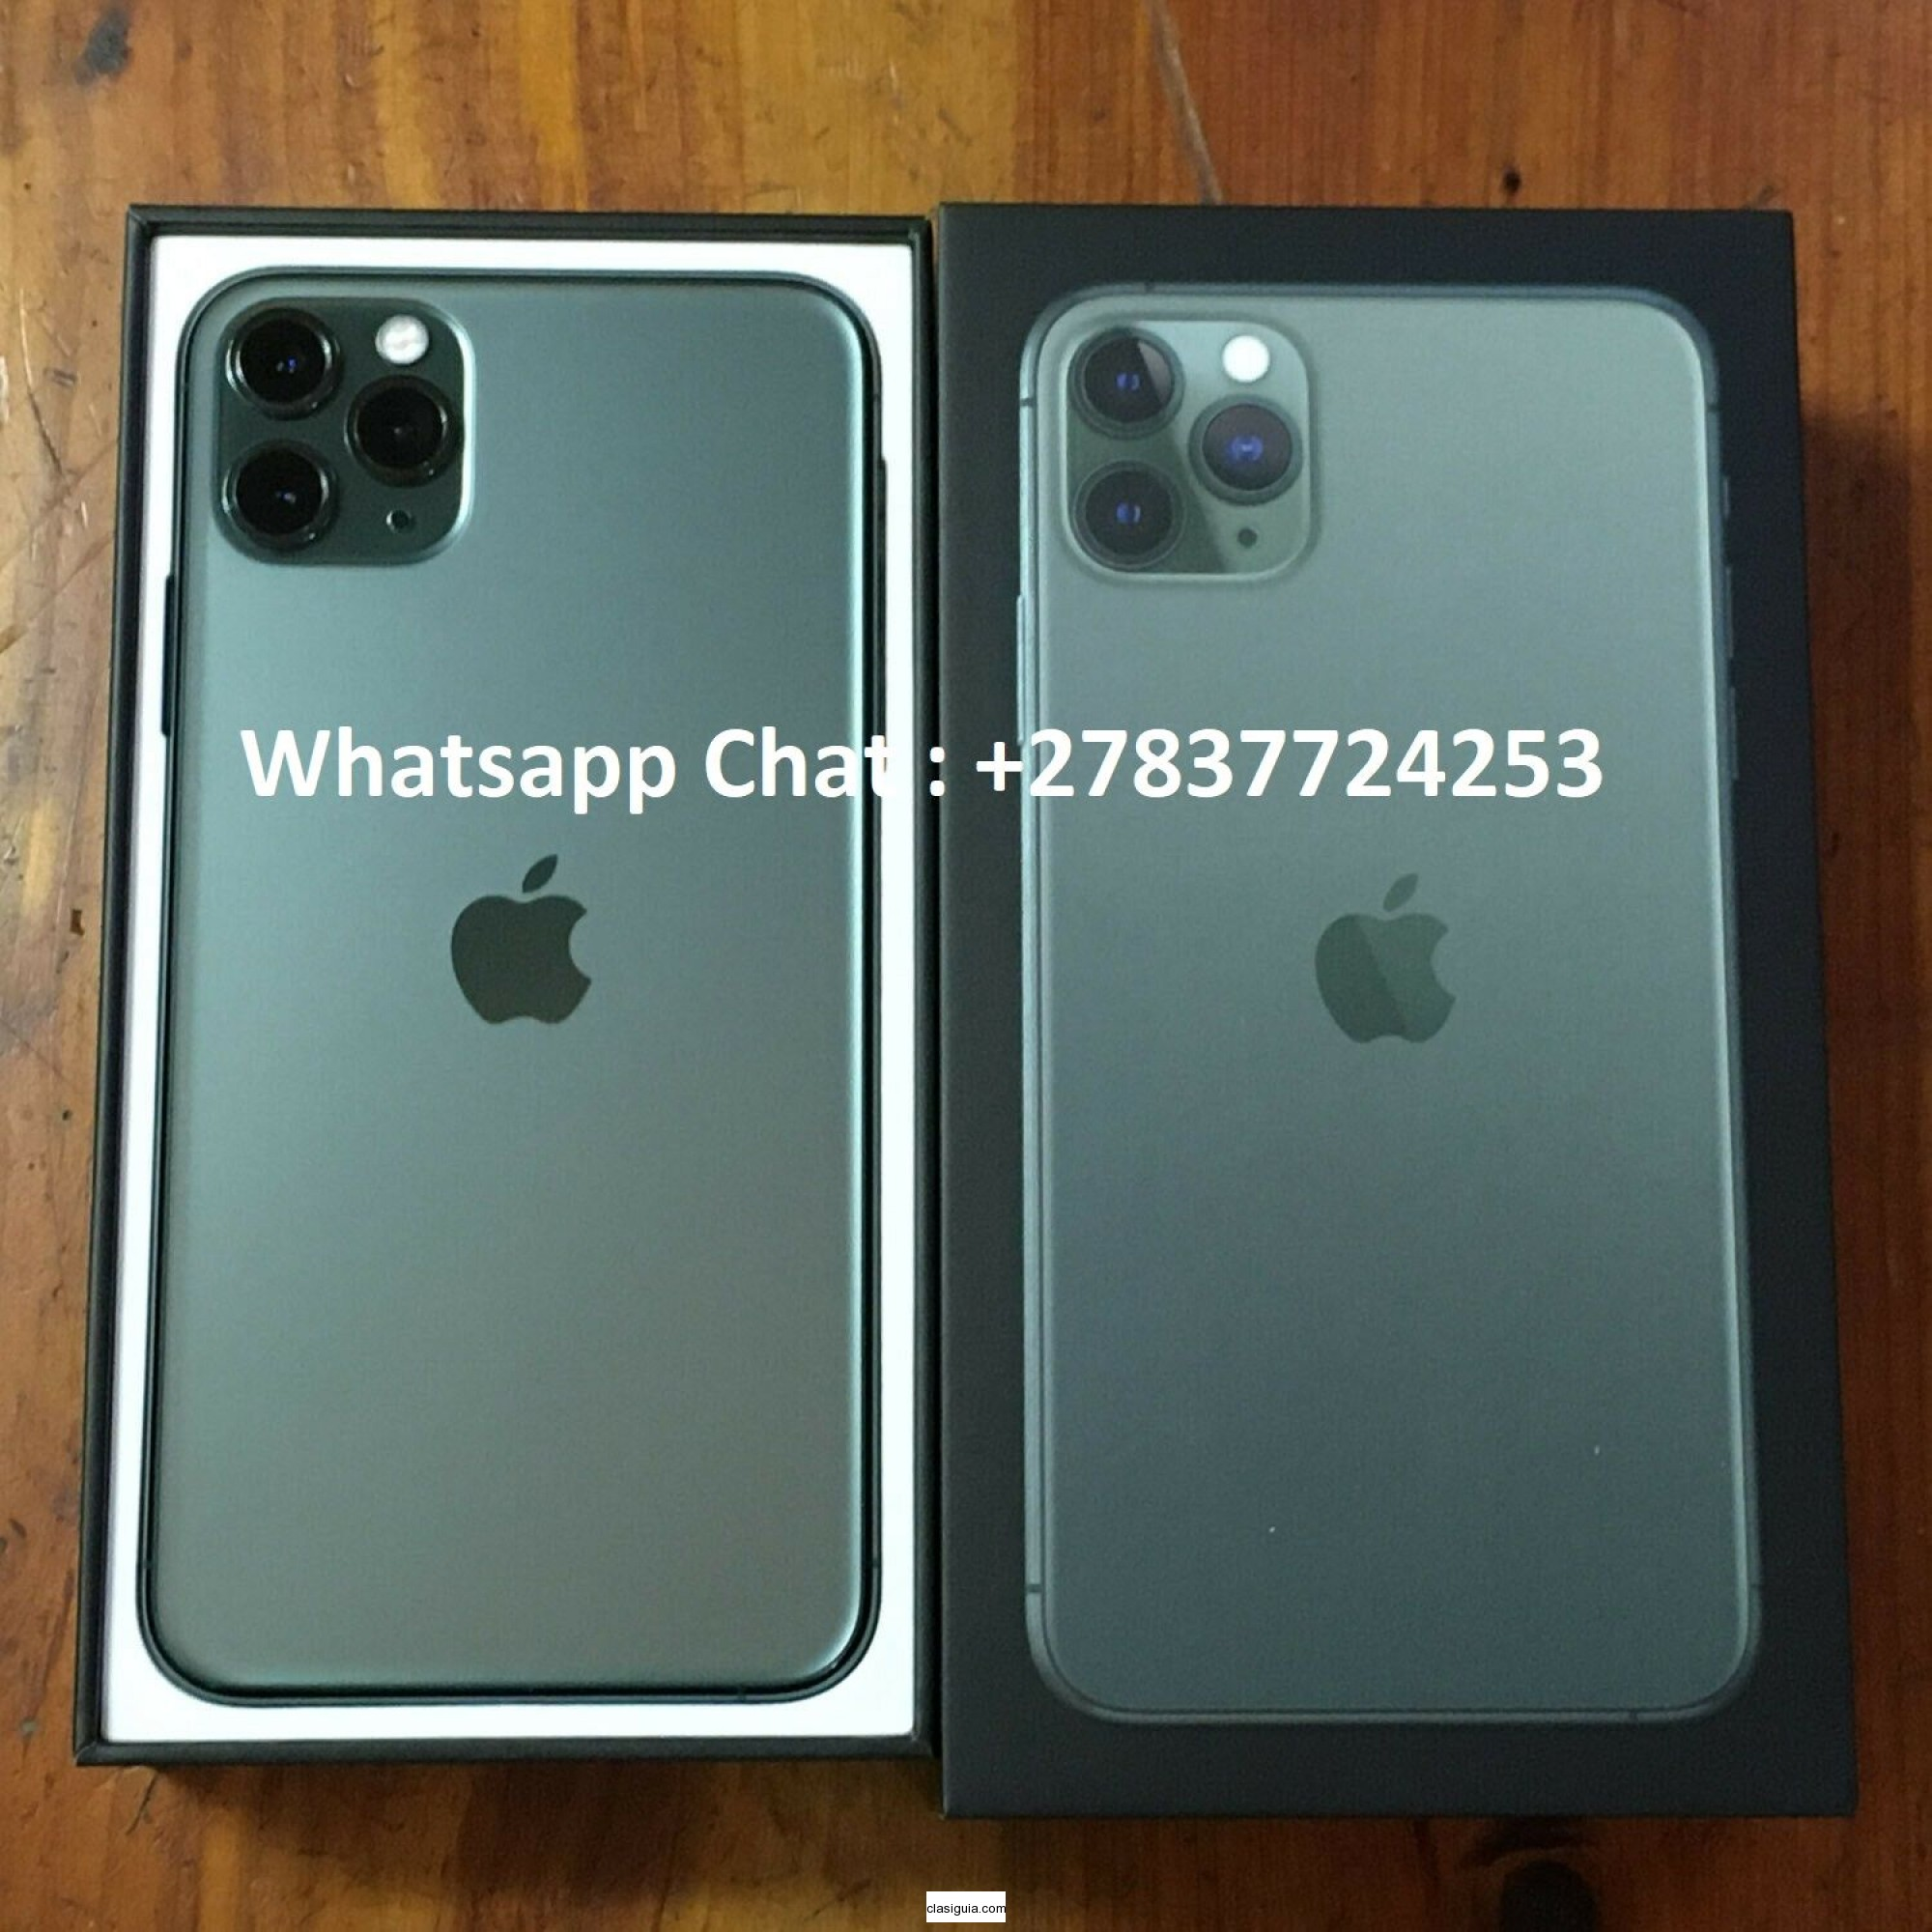 Apple iPhone 11 Pro  64GB = $600, iPhone 11 Pro Max  64GB =   $650, iPhone 11  64GB =  $470, iPhone XS 64GB = $450 ,  iPhone XS Max 64GB = $480